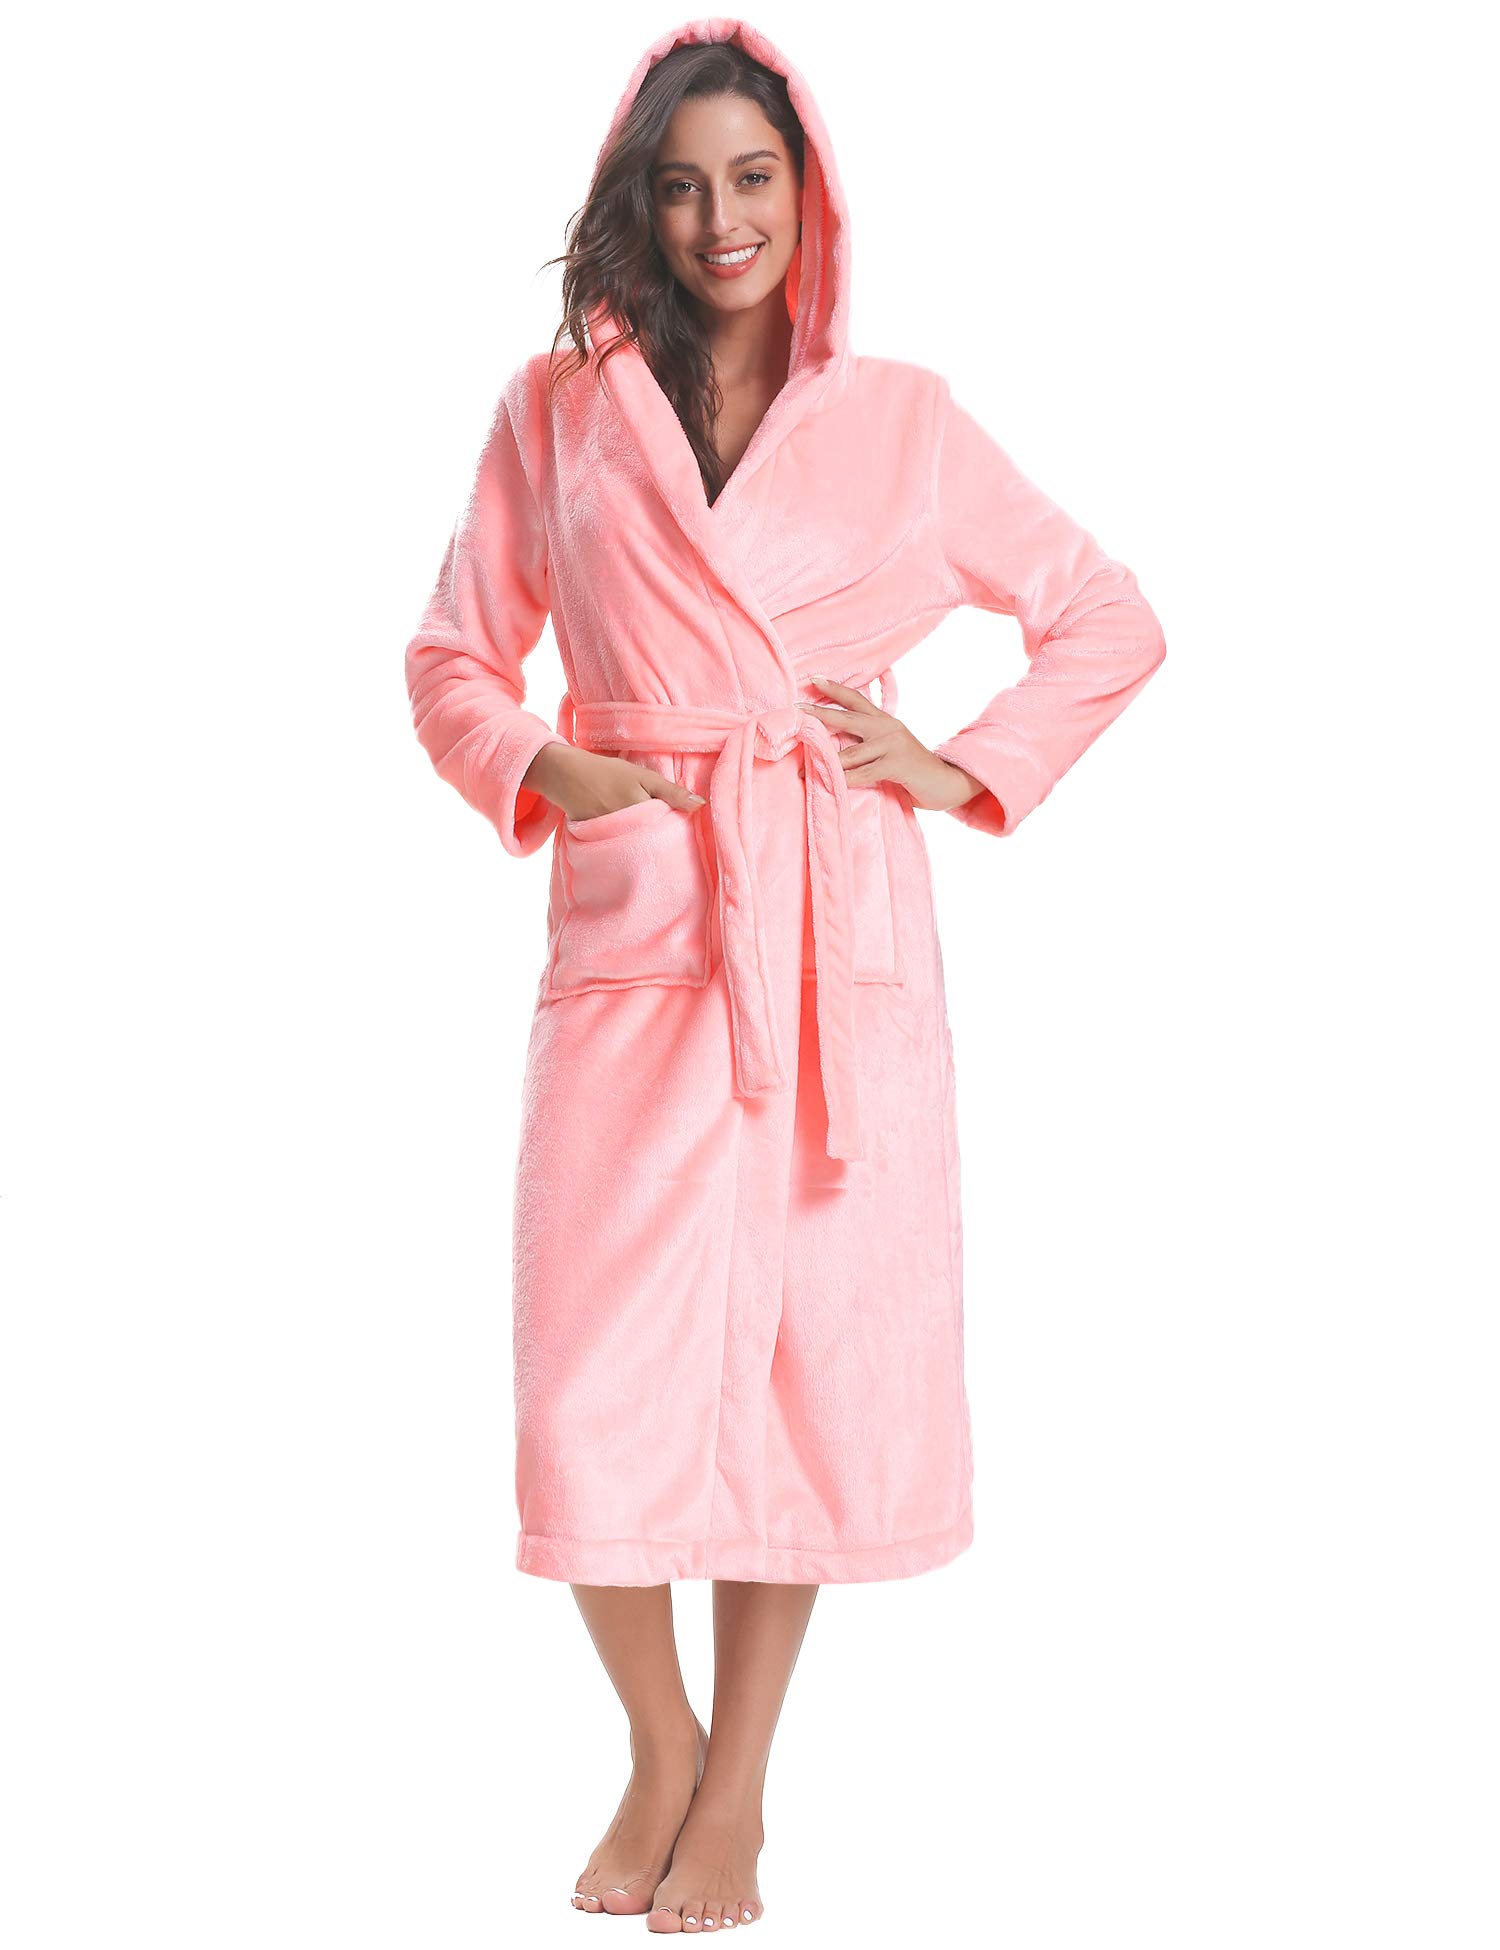 da638f430a Hawiton Unisex Winter Hooded Robes Long Bathrobe Plus Size Nightgown Robe  with Pockets